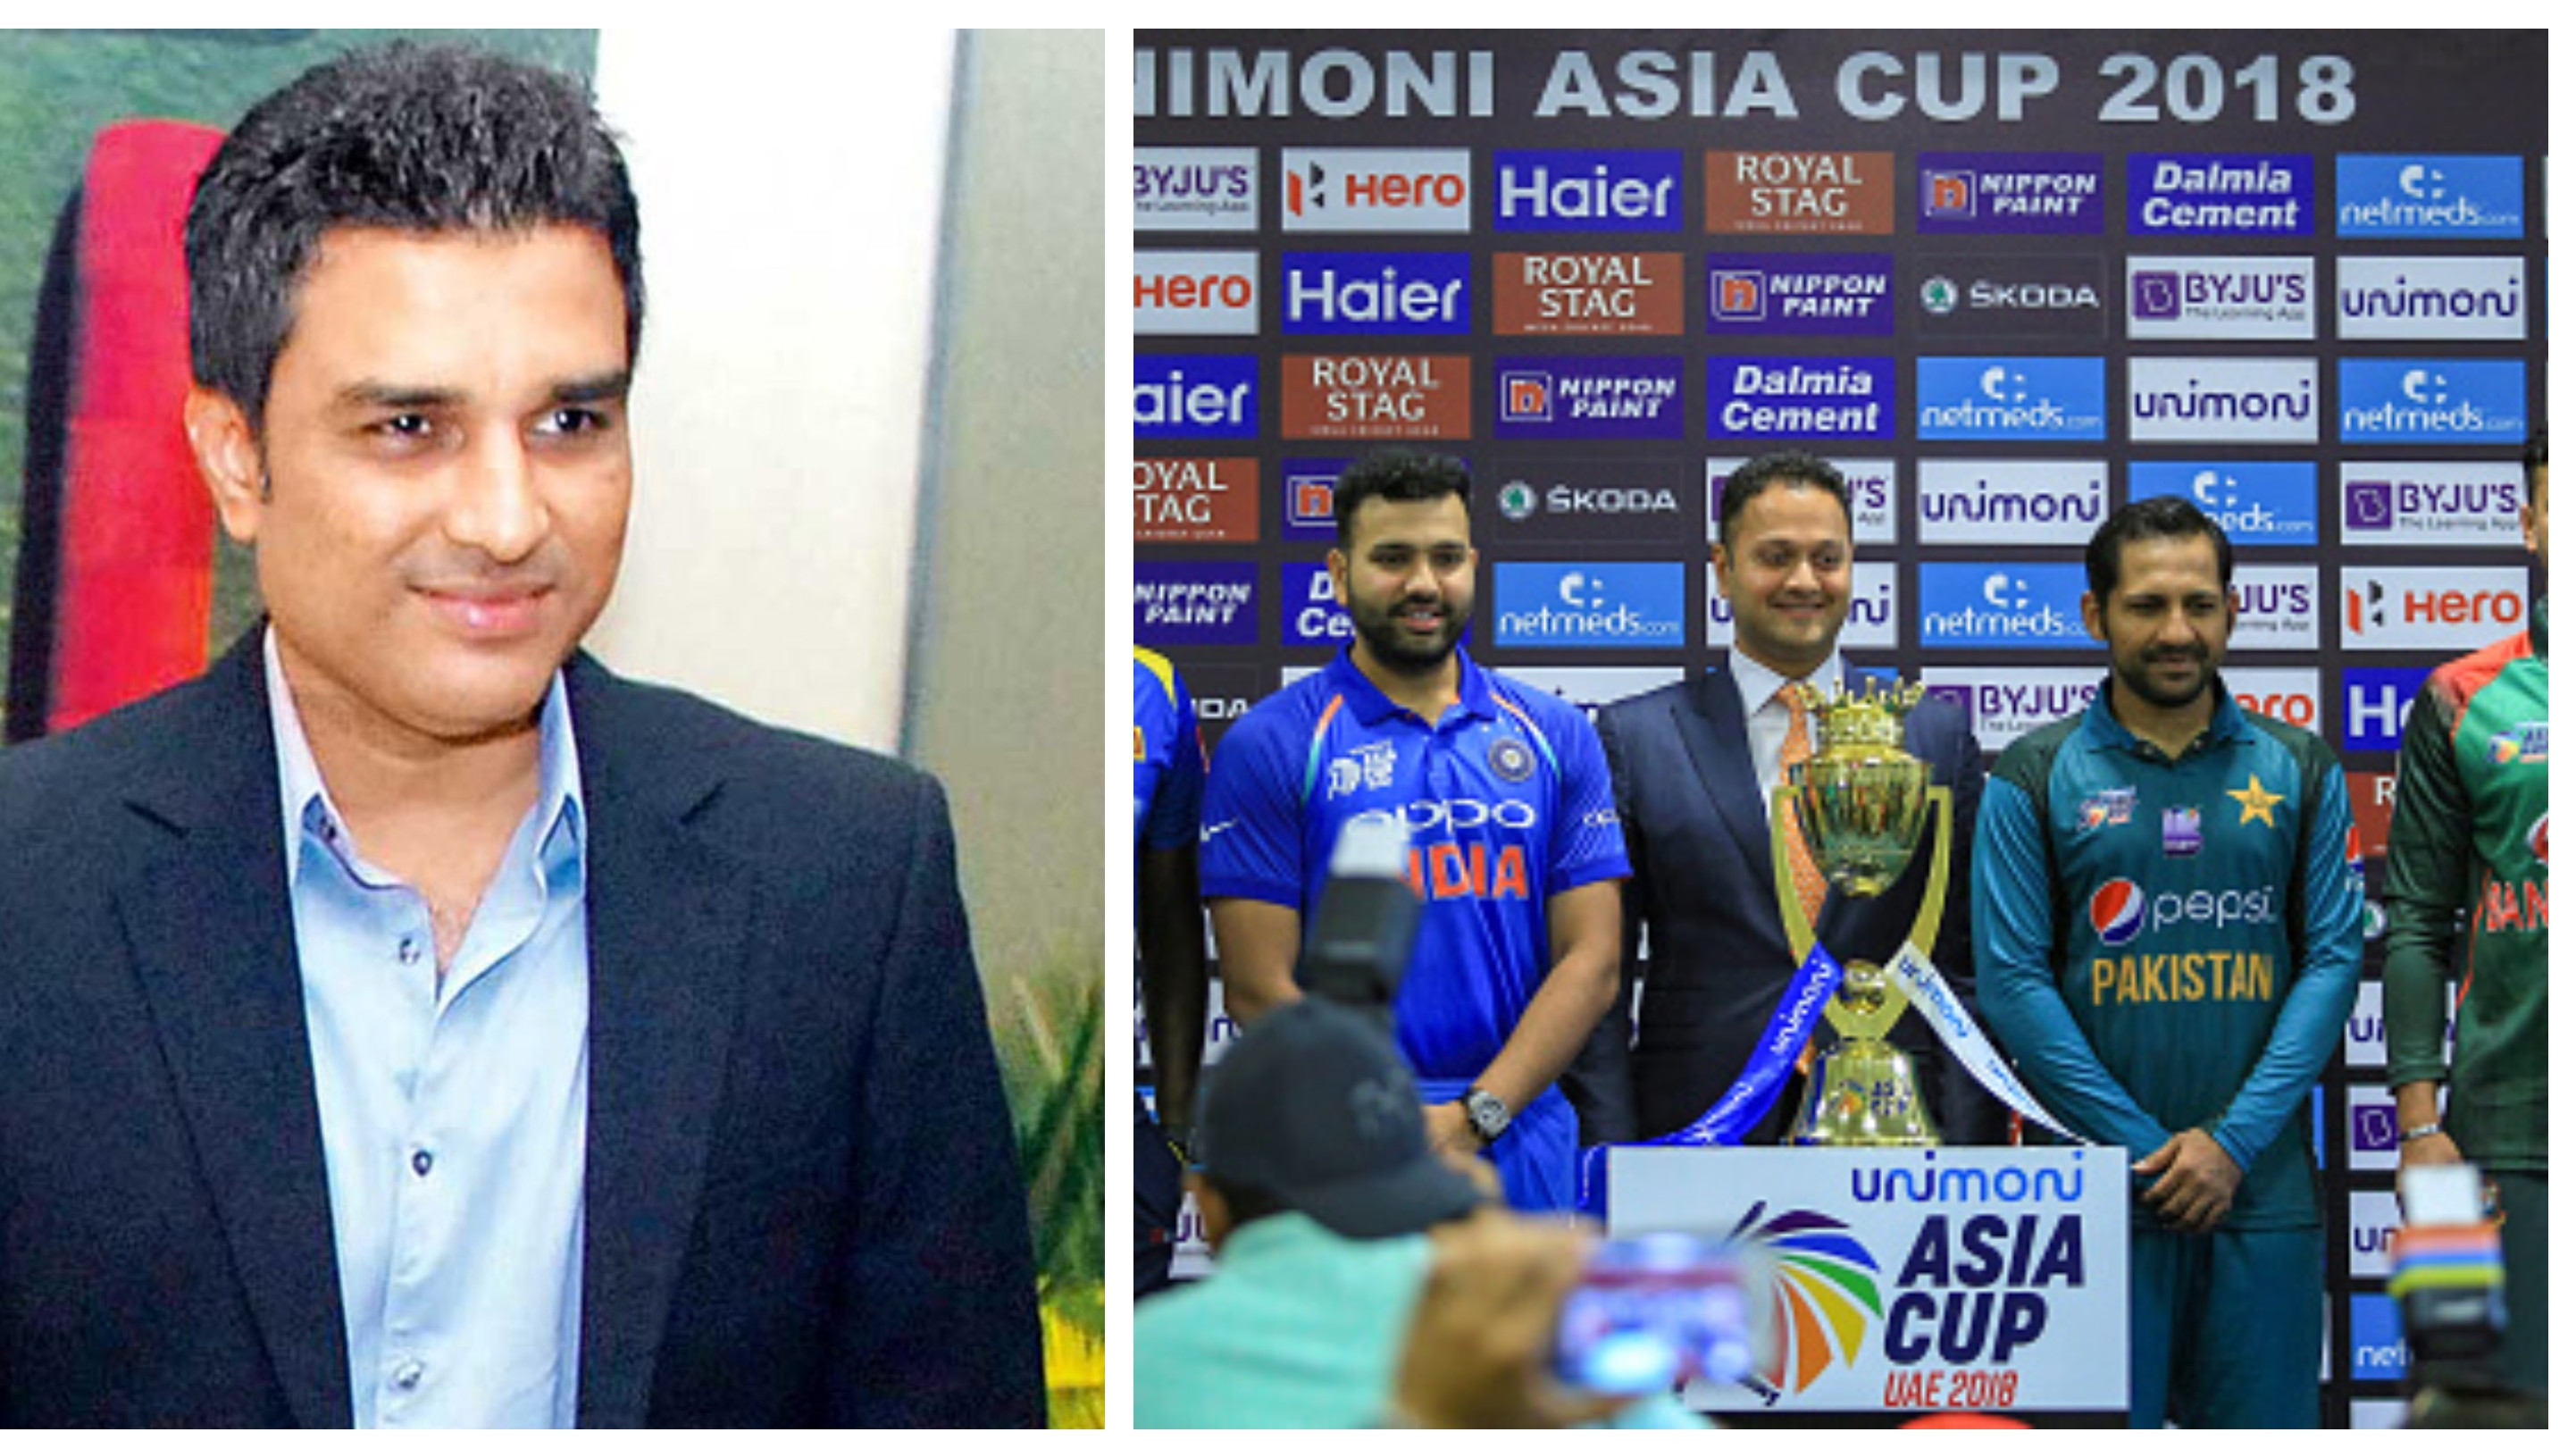 Asia Cup 2018: Sanjay Manjrekar picks his favourites for the tournament